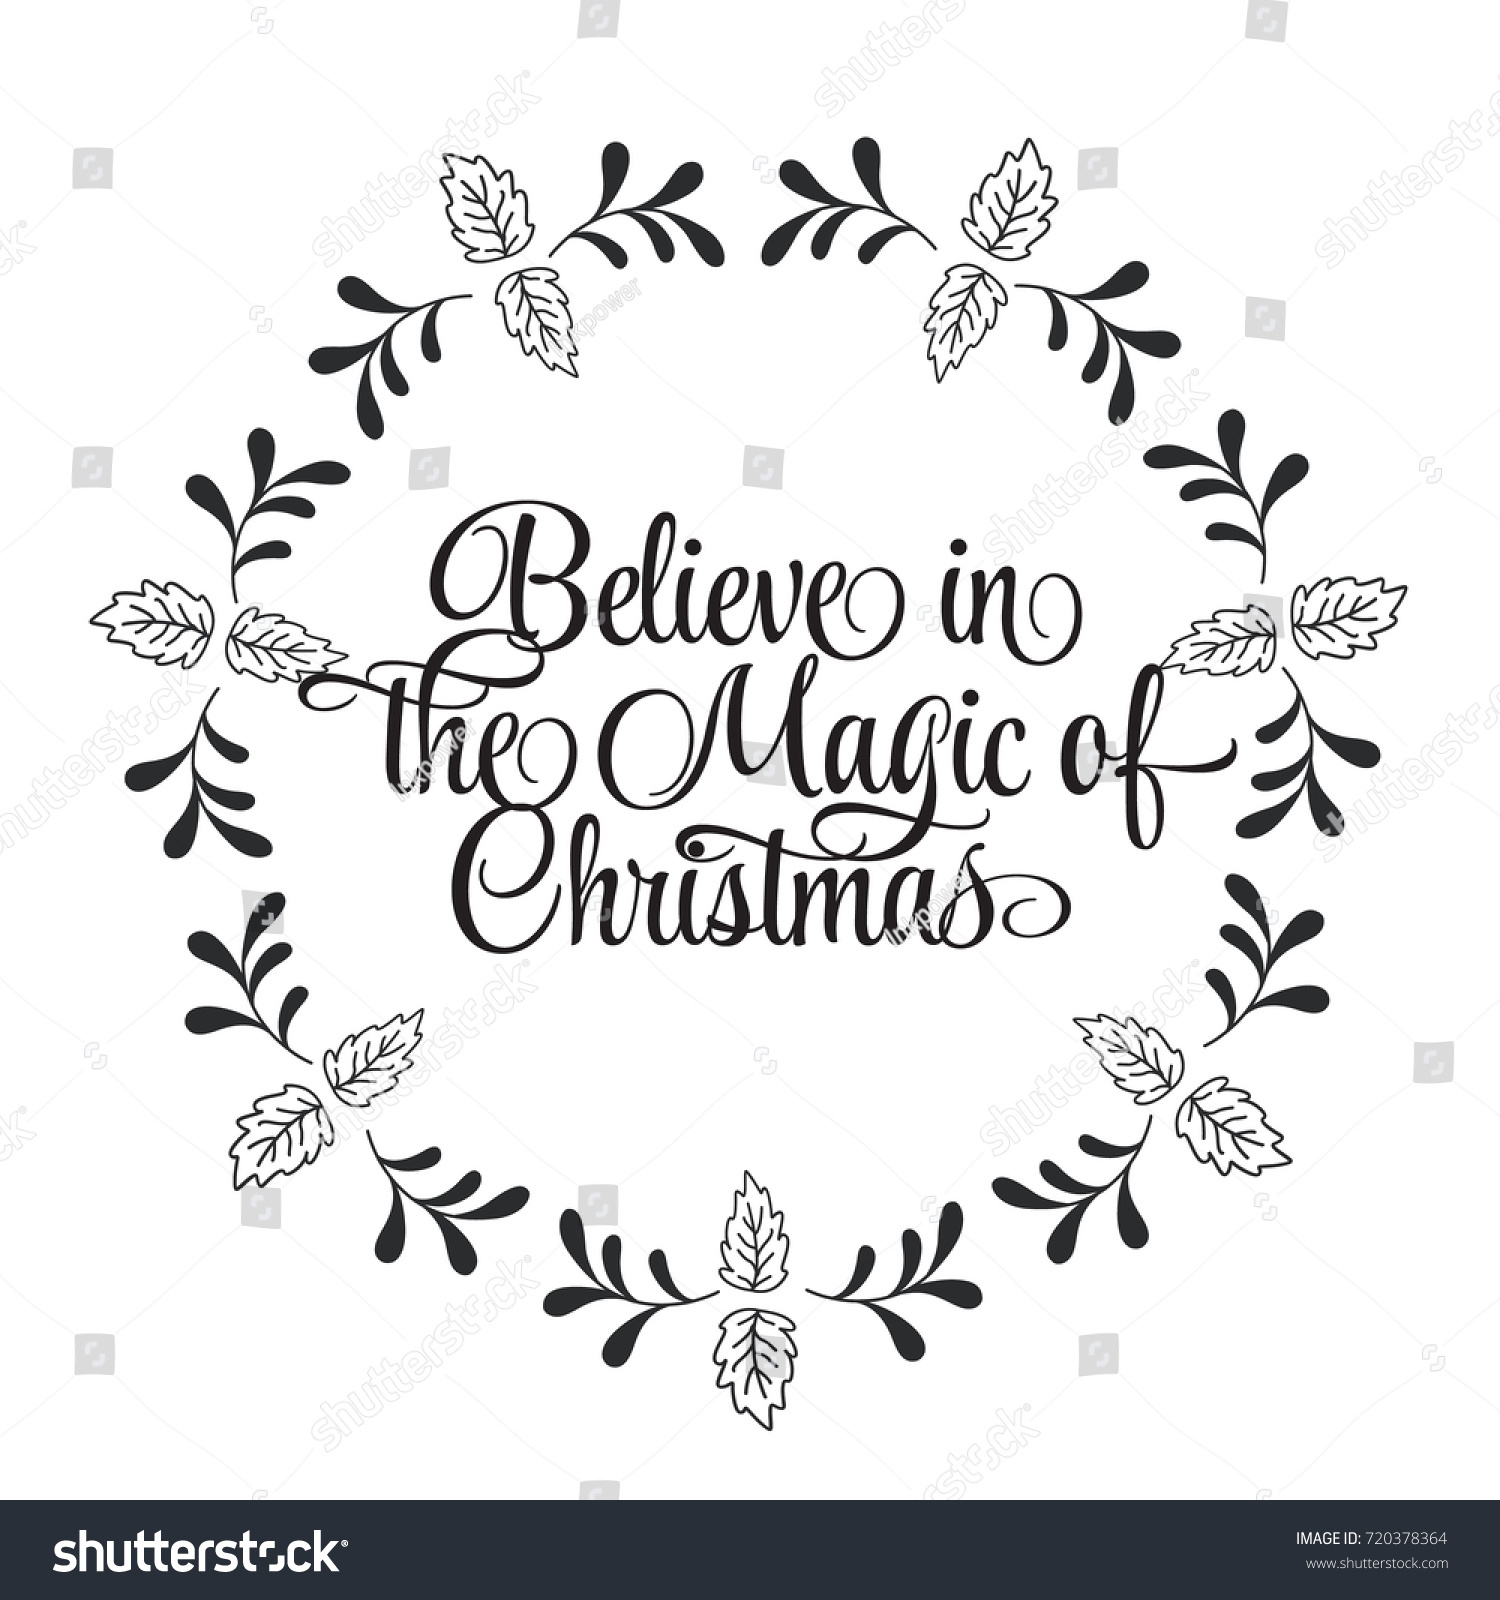 Christmas Related Word Art Design Vector Stock Vector 720378364 ...